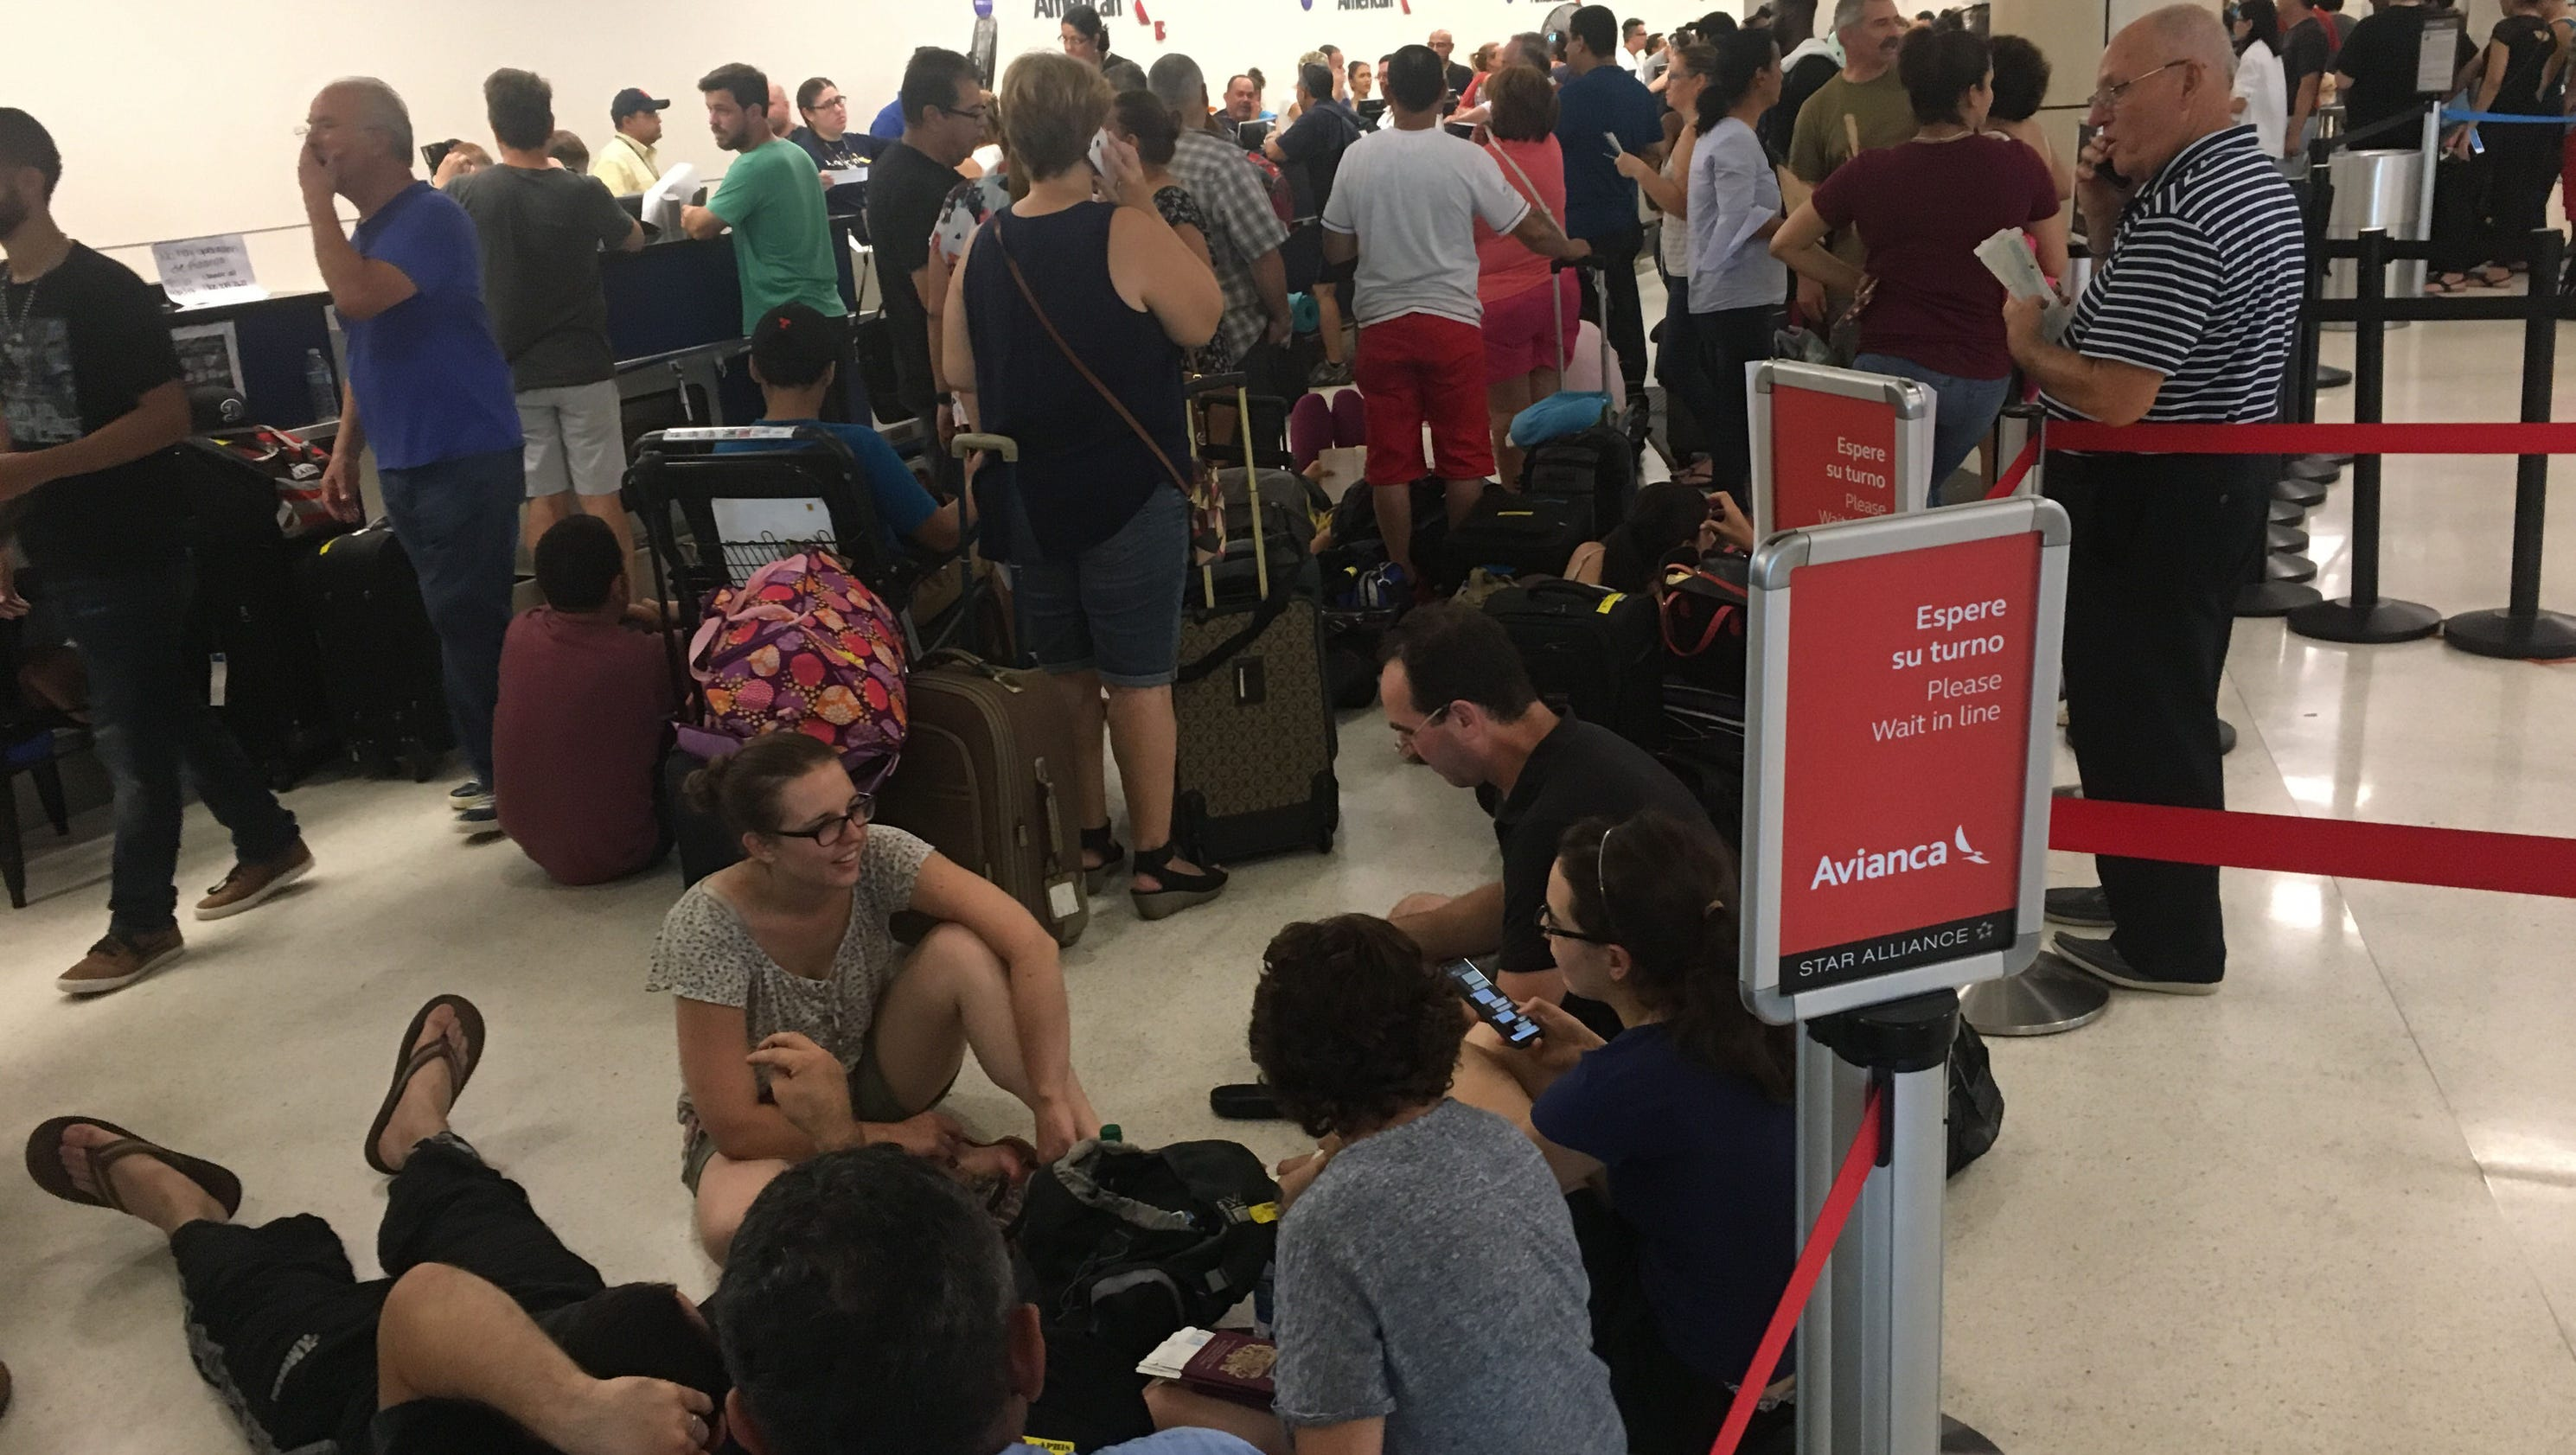 'It's like the end of the world' inside San Juan's steaming airport